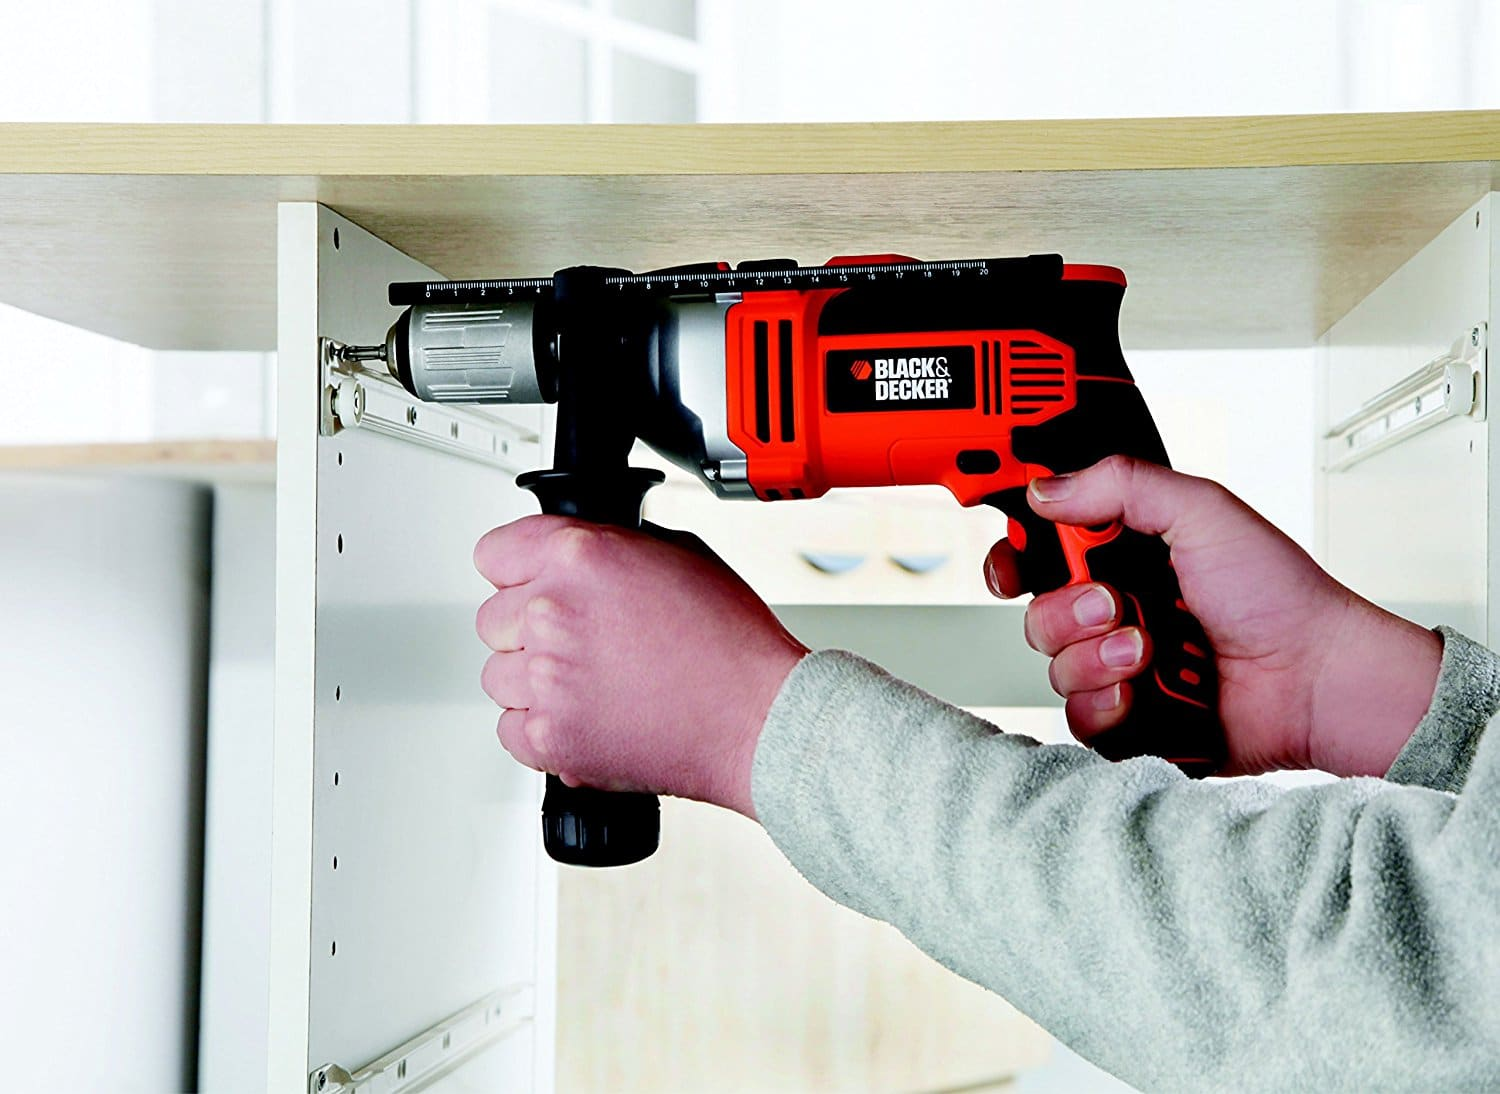 avis-perceuse-blackdecker